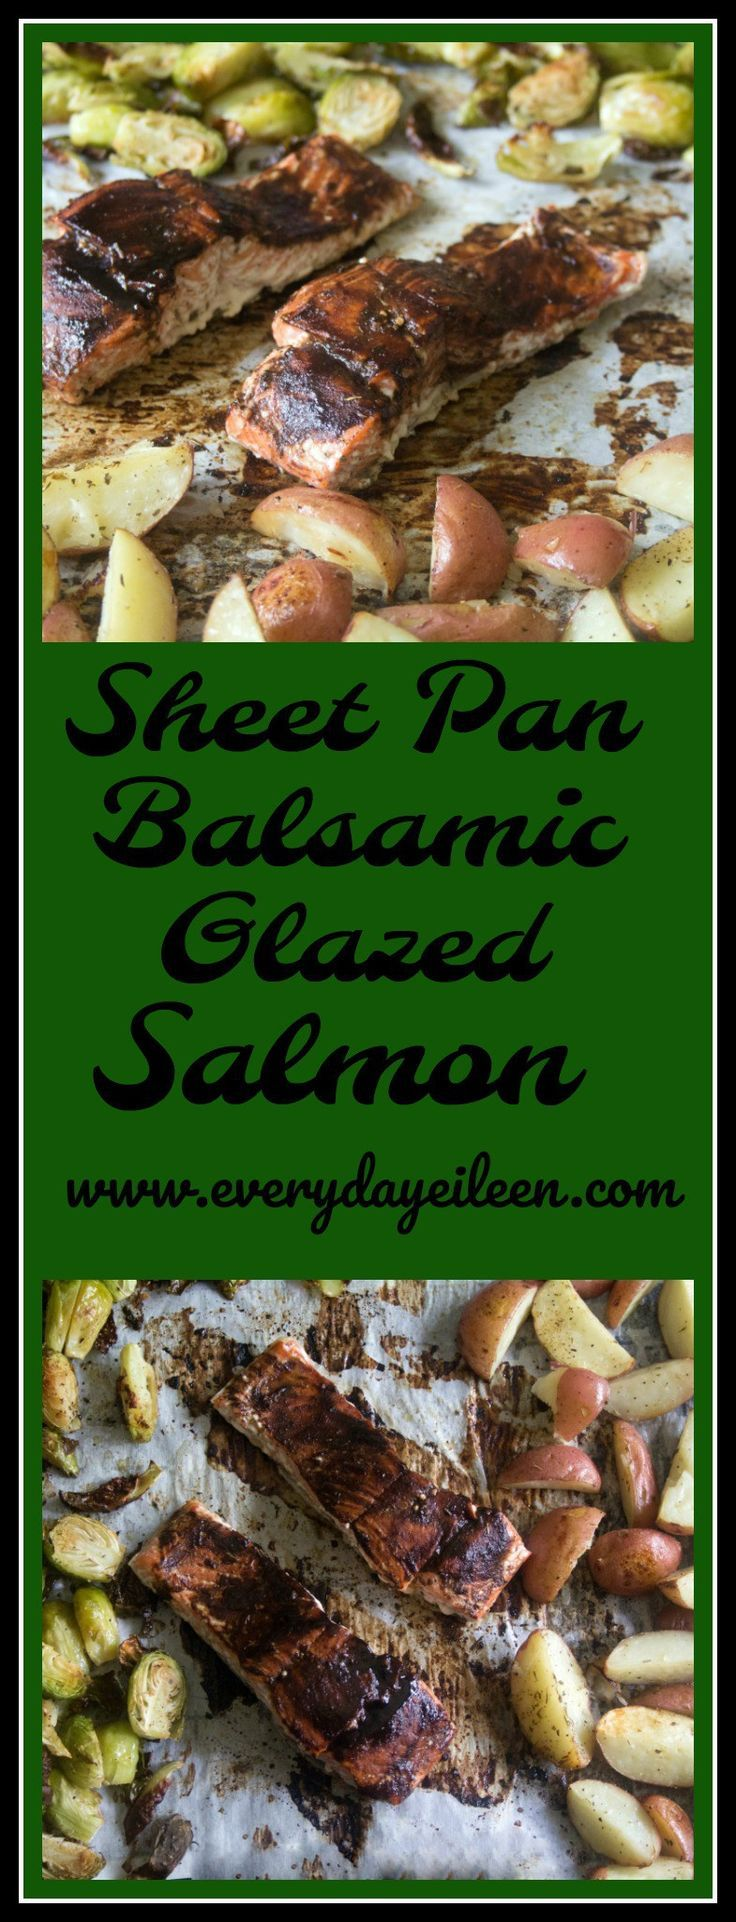 Sheet pan balsamic glazed salmon, potatoes and Brussels Sprouts. A no-fuss easy meal! Great for any week night tasty meal. Perfect for entertaining as it is a quick fix meal!  The Balsamic glaze adds a zesty flavor to the salmon!